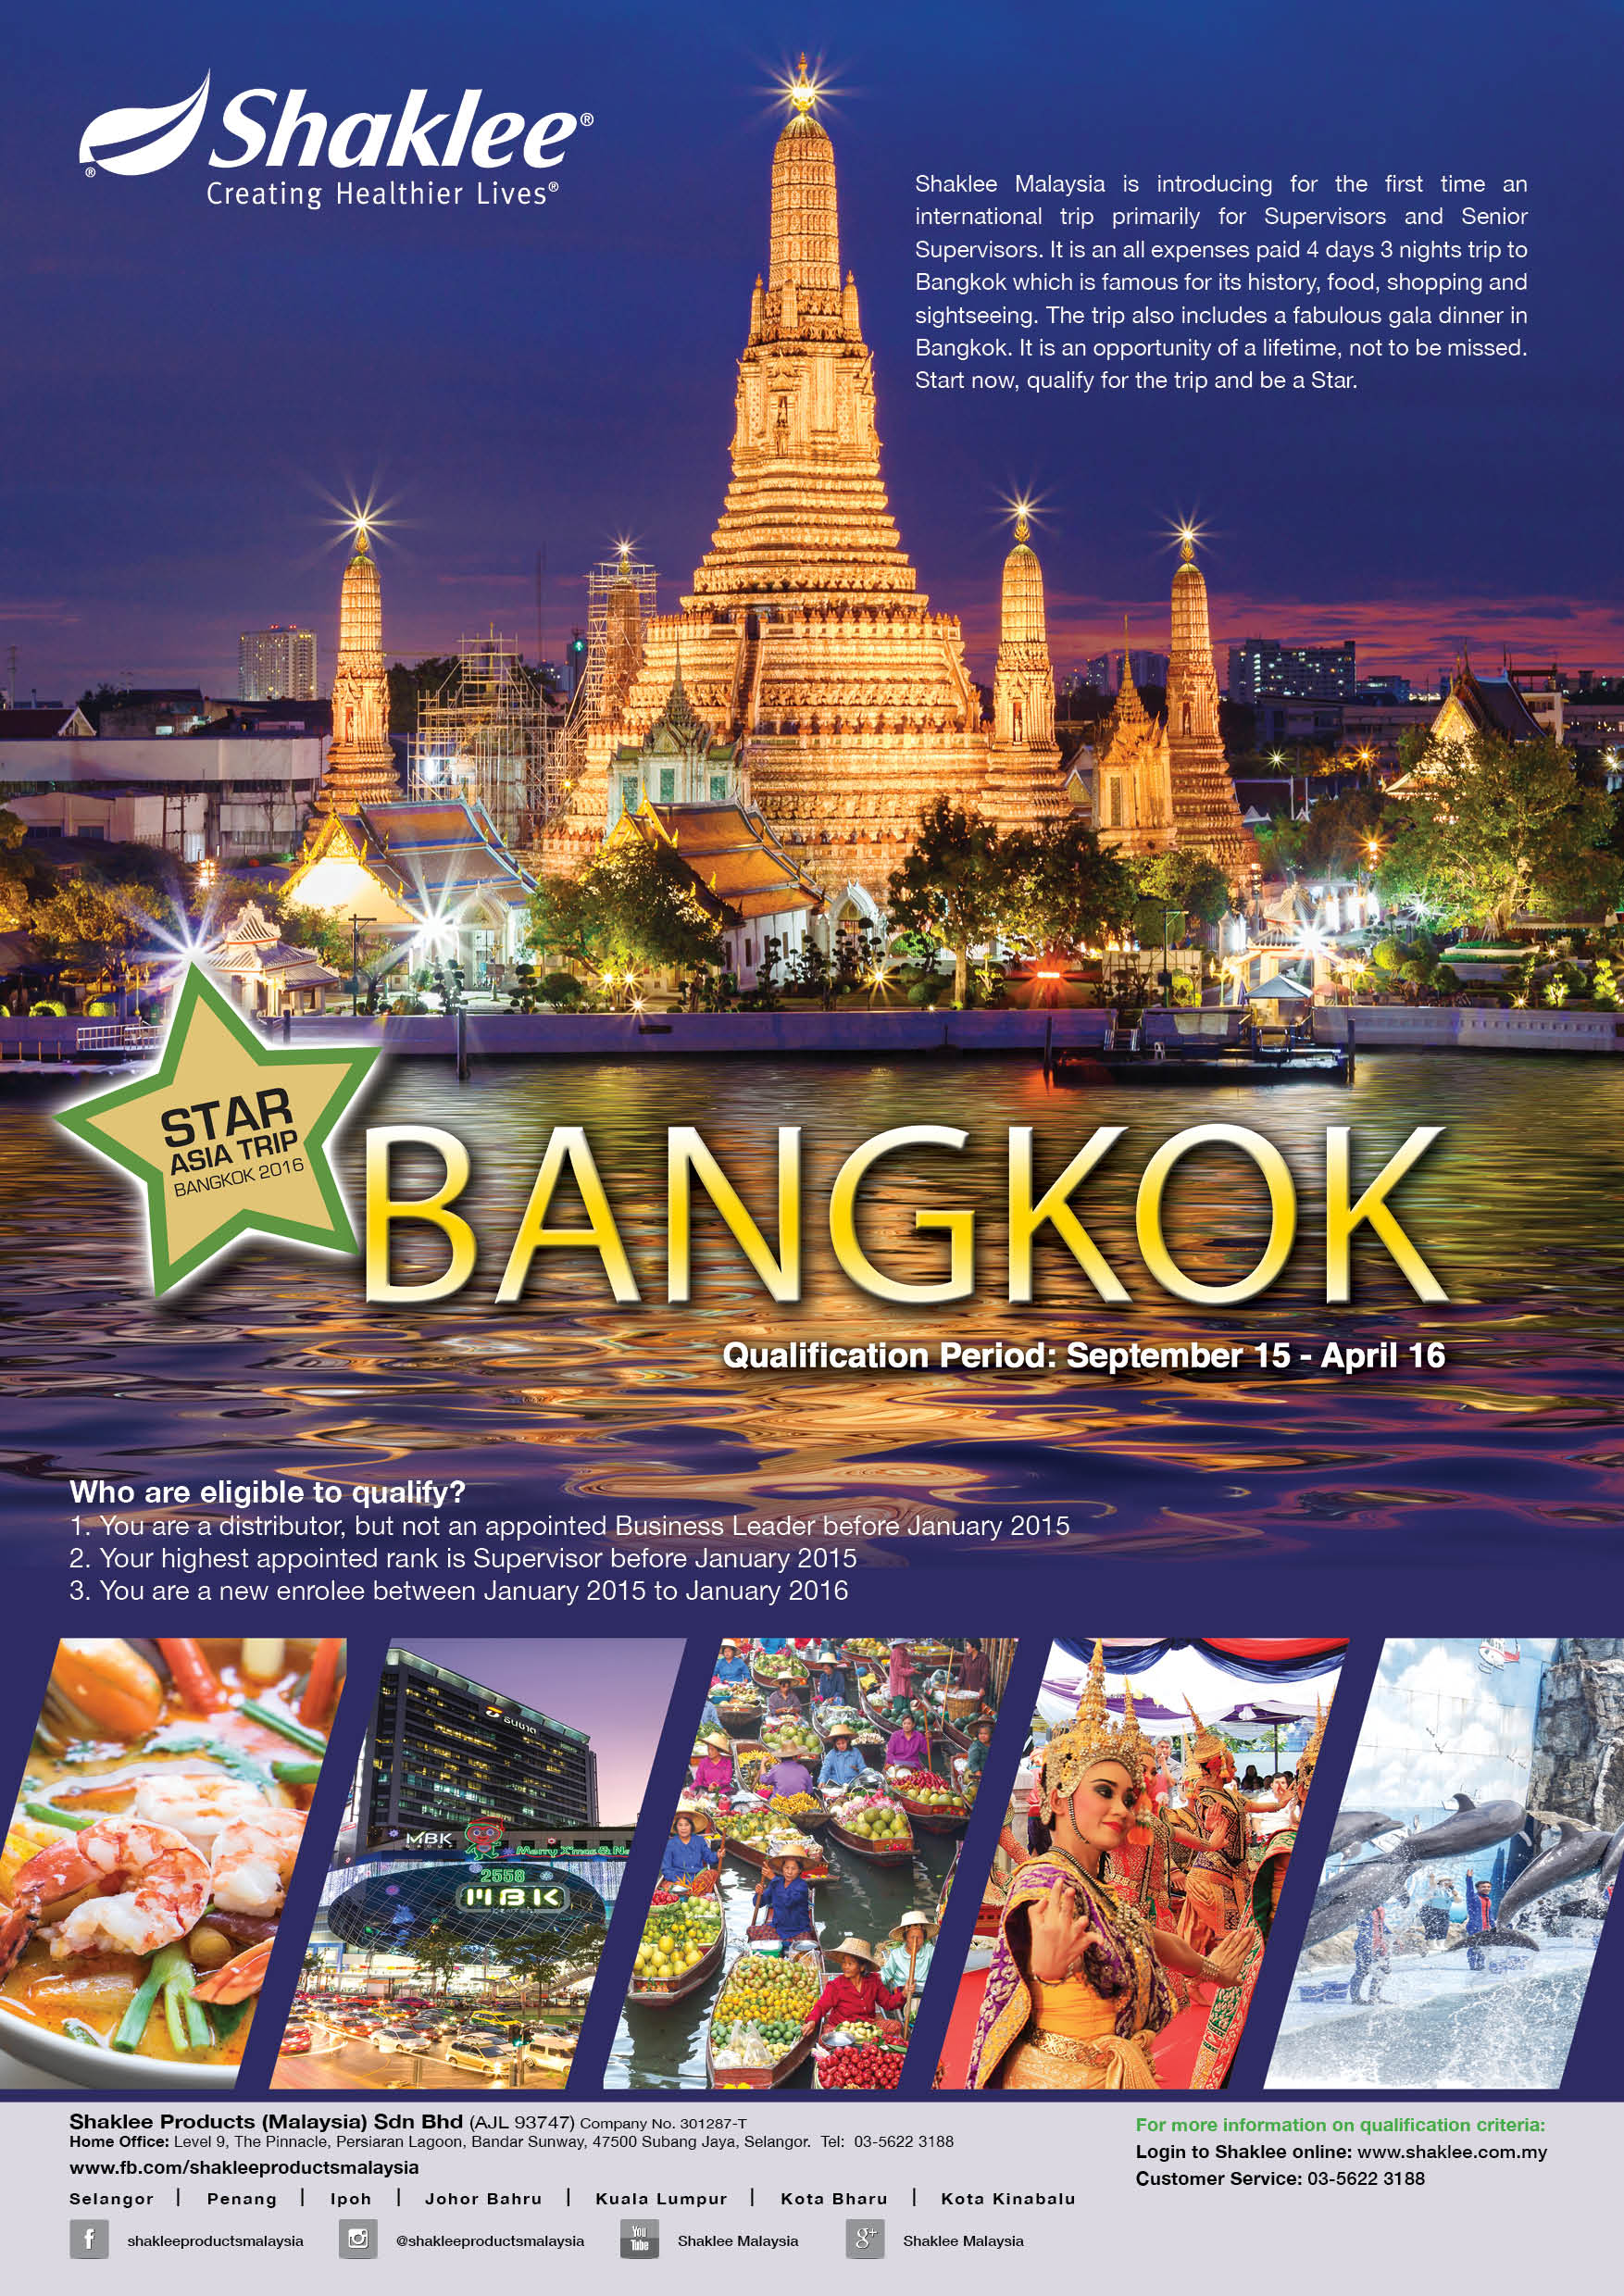 Travel for free to Bangkok with a 5 star accomodation